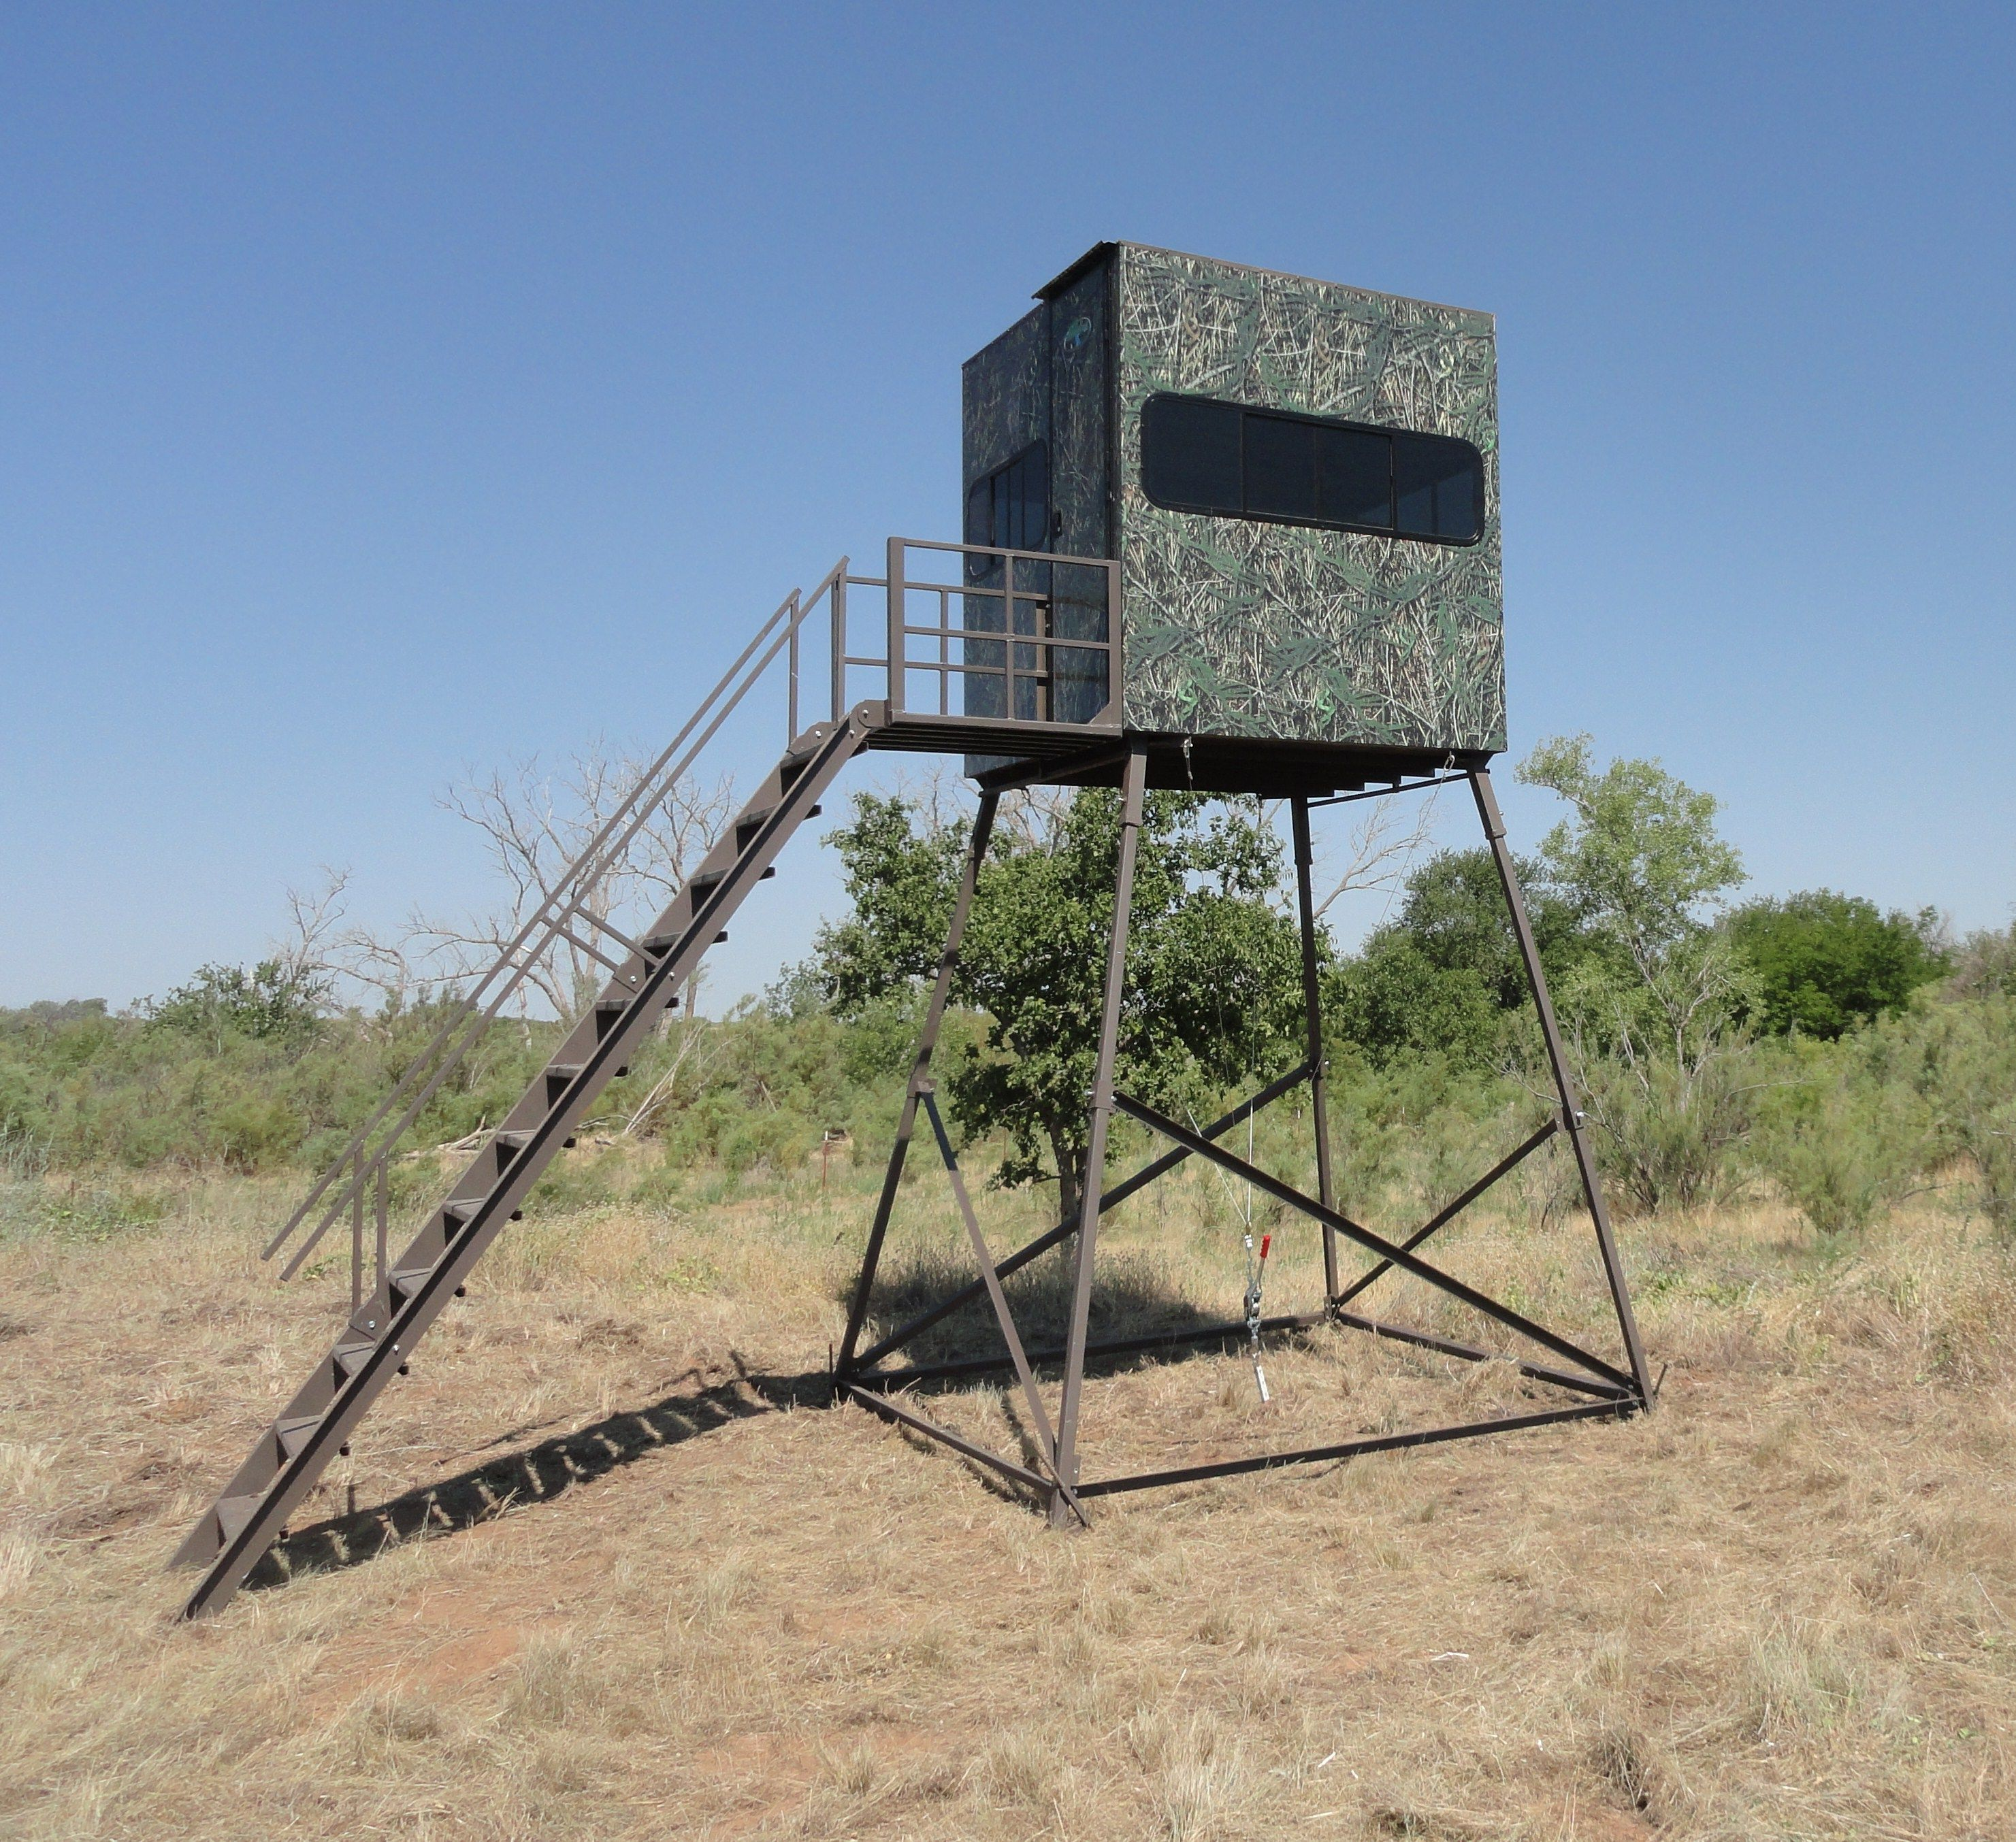 Bittercreek 6x6 Hunting Blind On 10 Tower Deer Stand Deer Stand Plans Tower Deer Stands